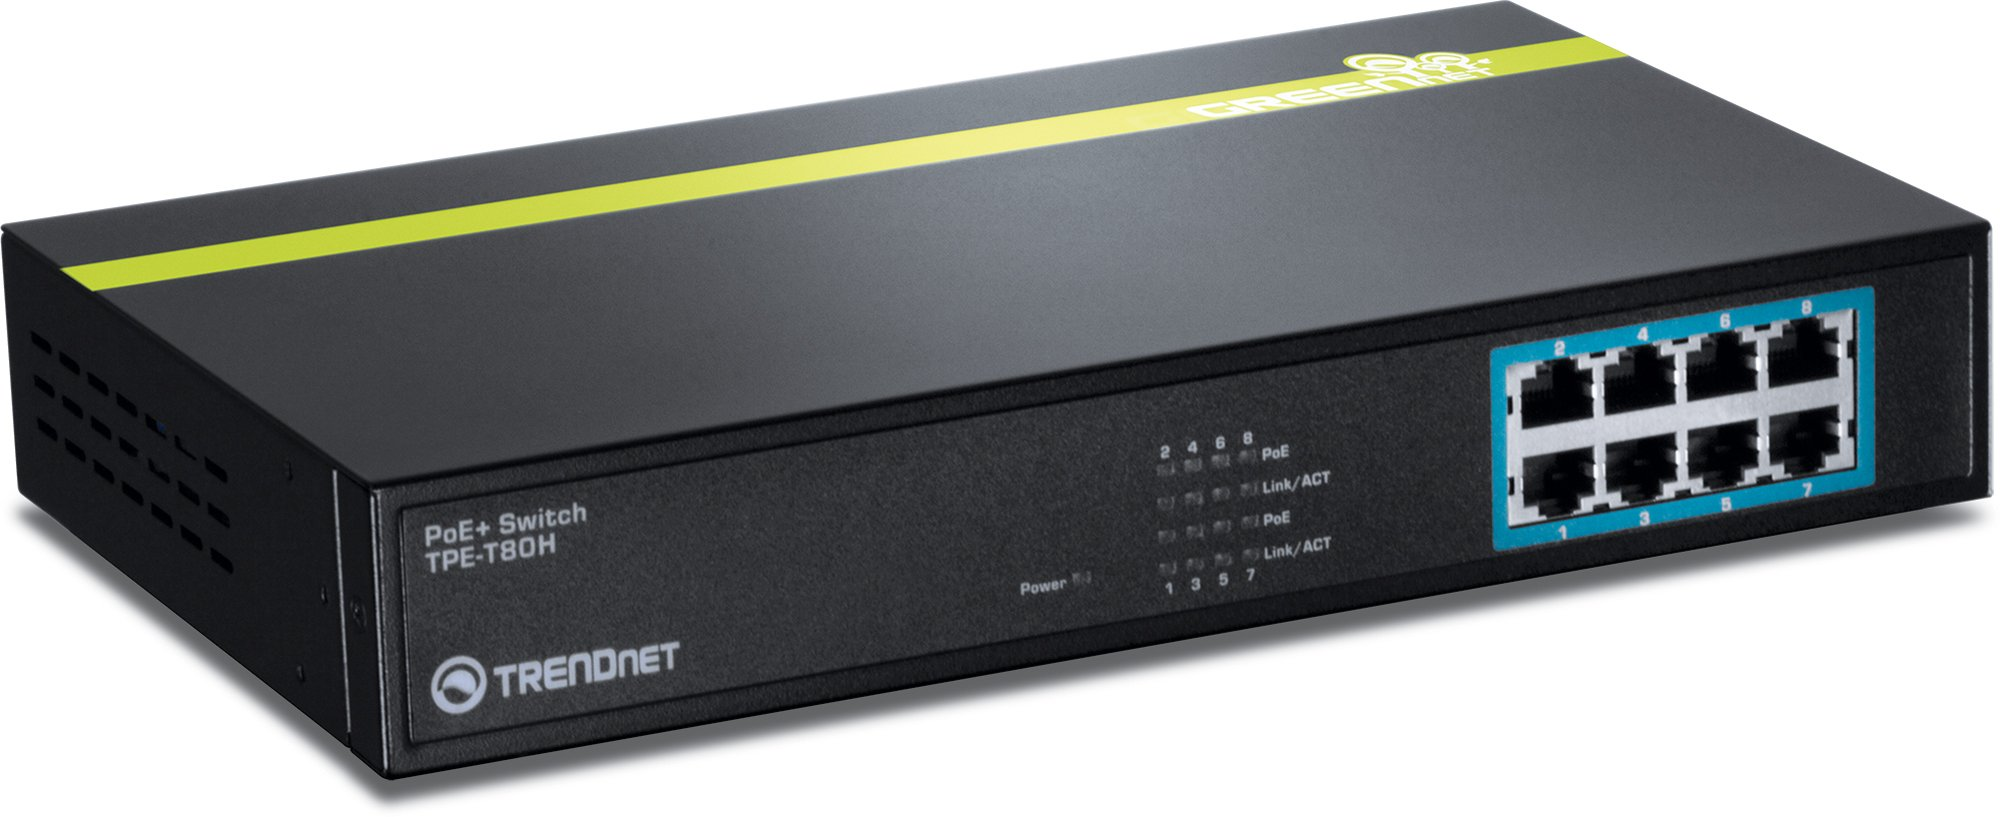 TRENDnet 8-Port 10/100 Mbps GREENnet PoE+ Switch Rack Mountable, 8 x 10/100 Mbps PoE+ Ports, Up to 30 Watts Per Port with 125 W Total Power Budget, TPE-T80H